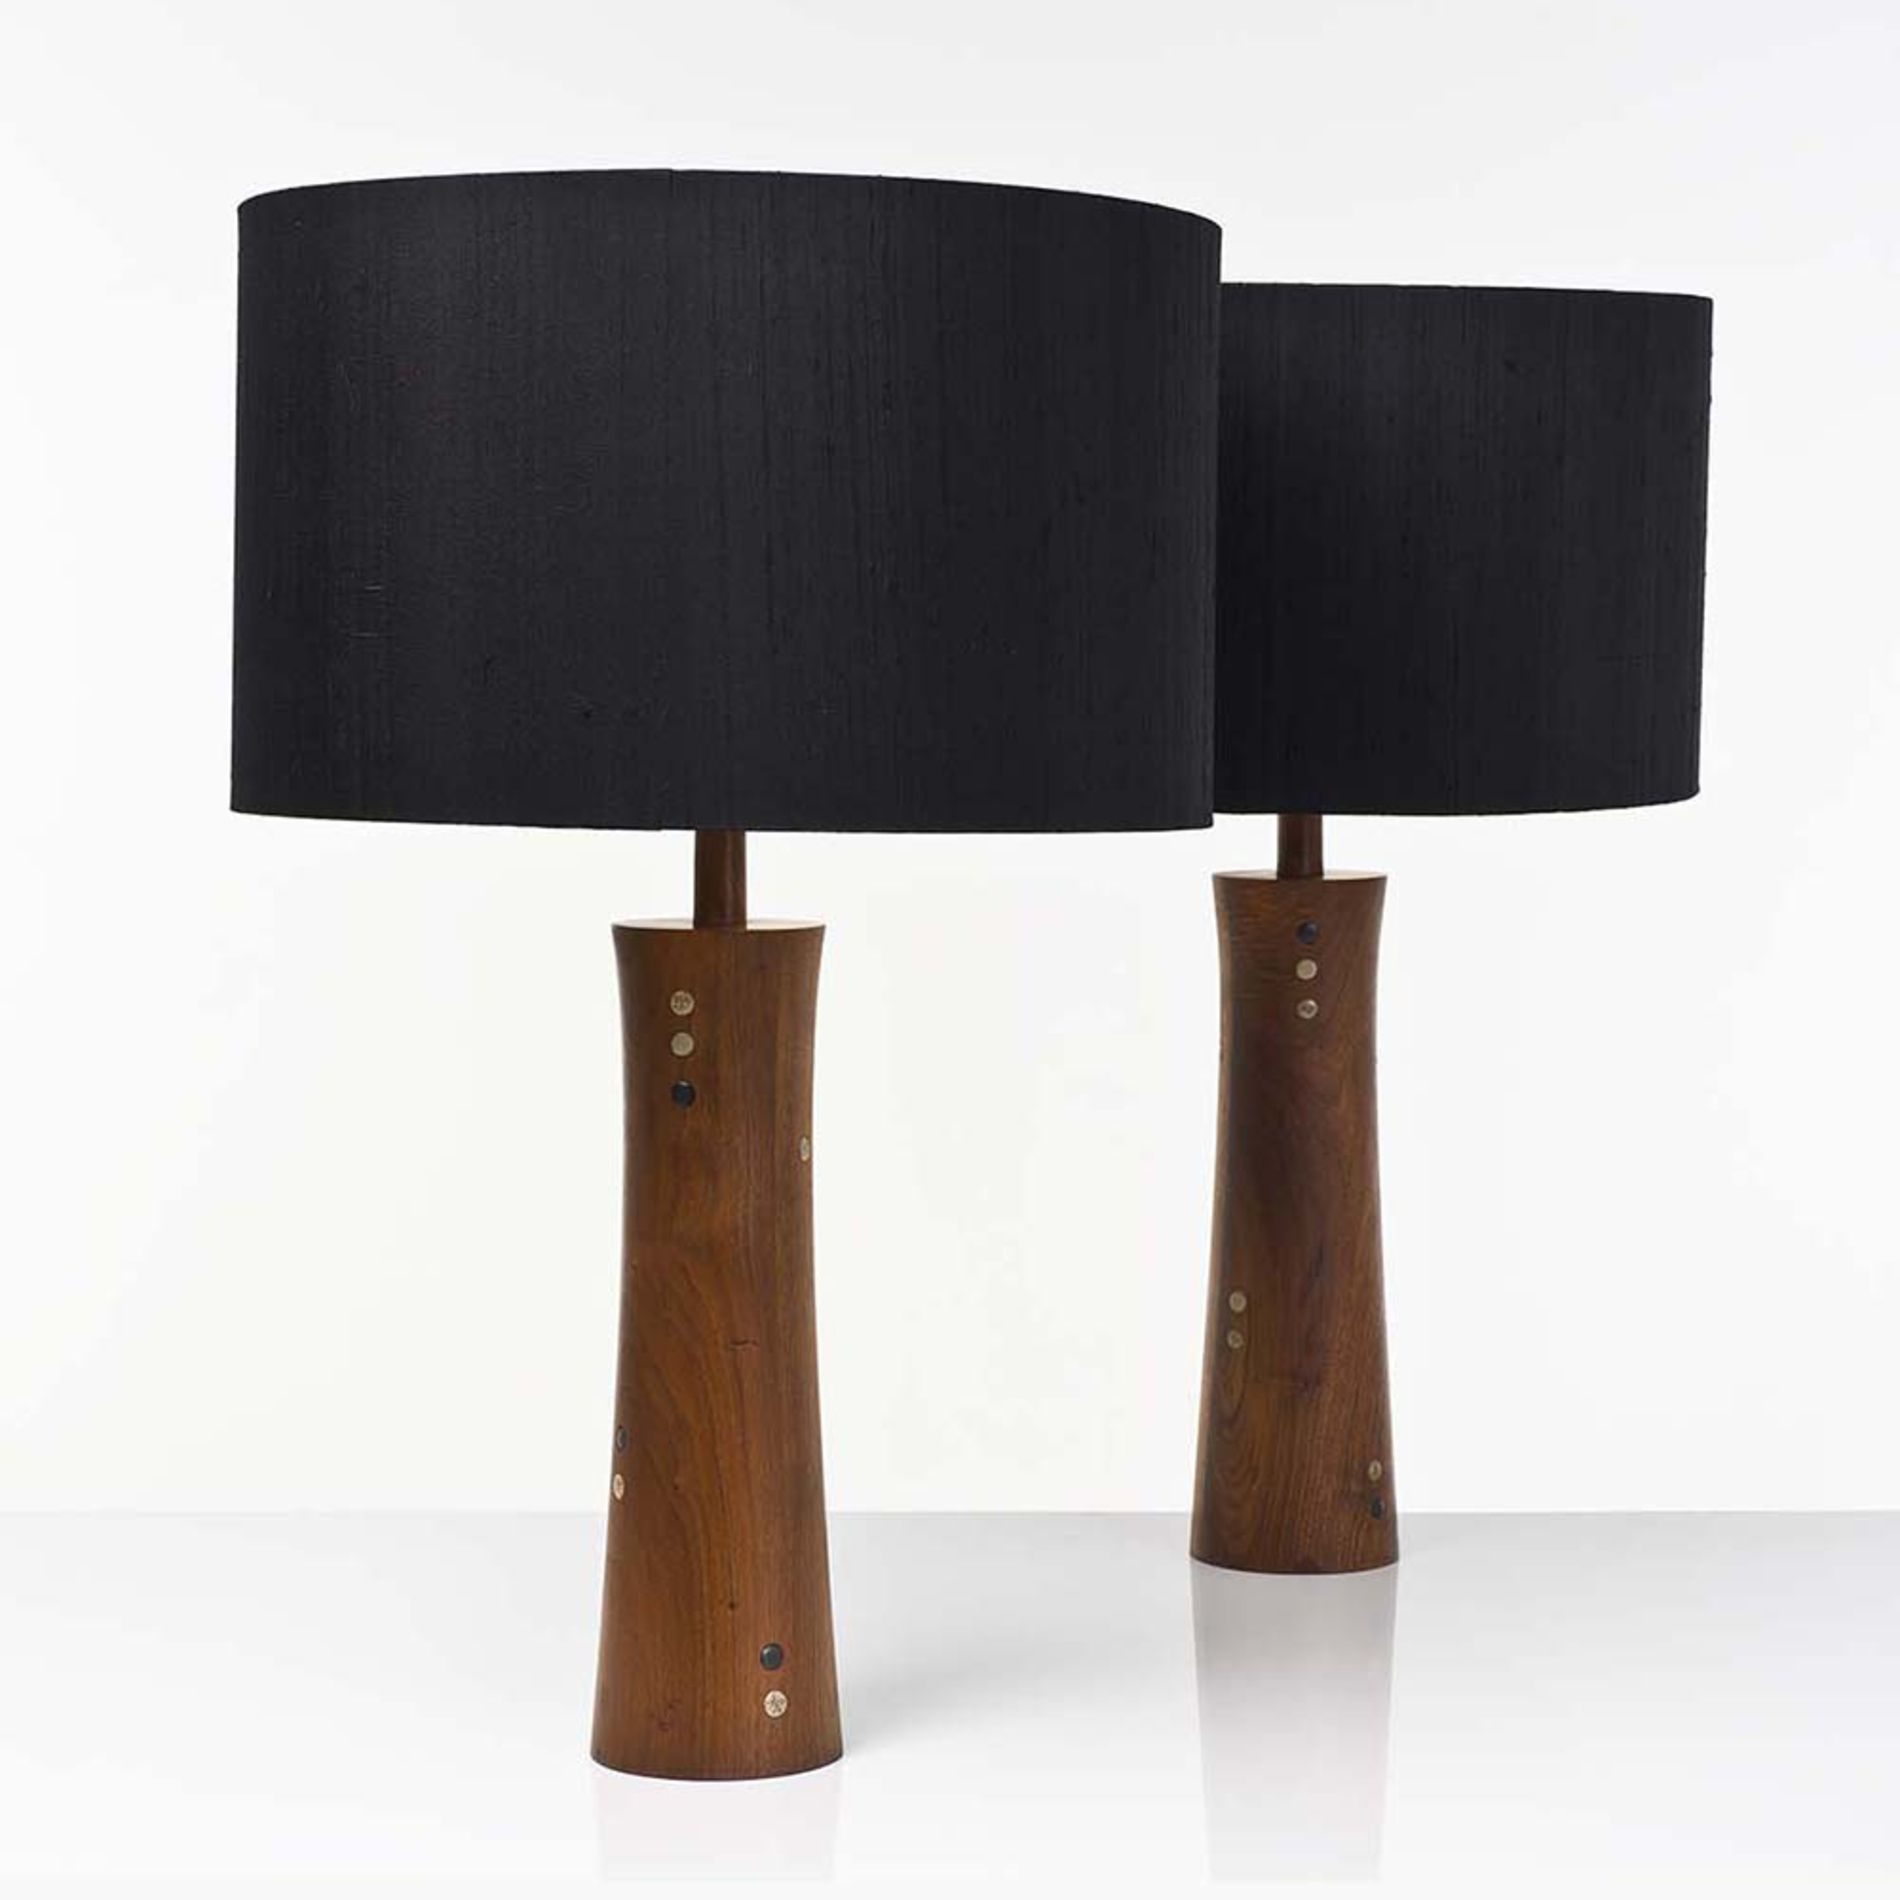 Gordon And Jane Martz; Wood Table Lamps With Ceramic Inlay For Marshall  Studio, 1950s